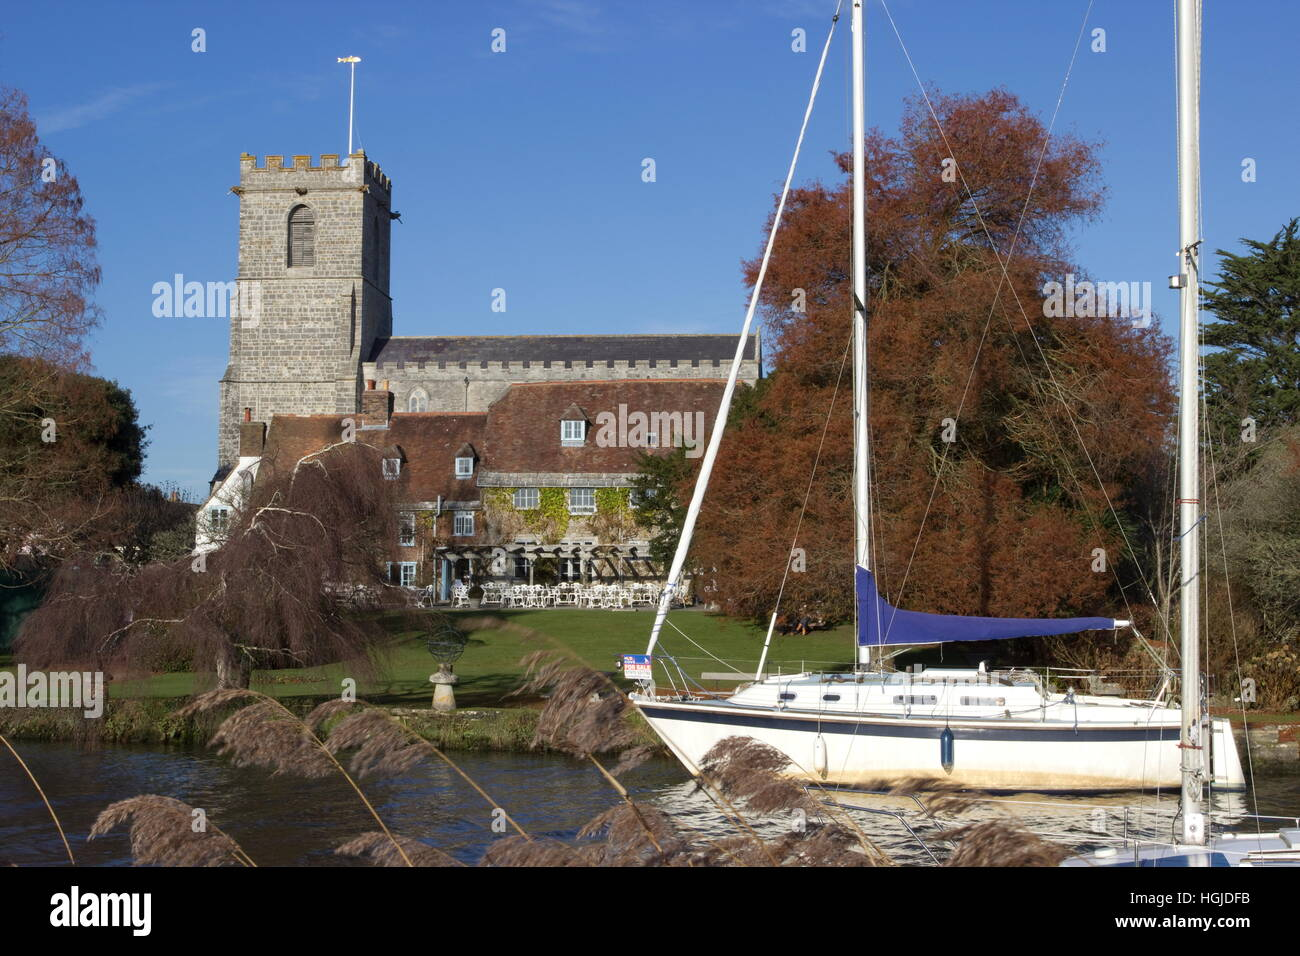 Lady St Mary Church and sail boats River Frome on a sunny Winter's day Wareham Dorset - Stock Image